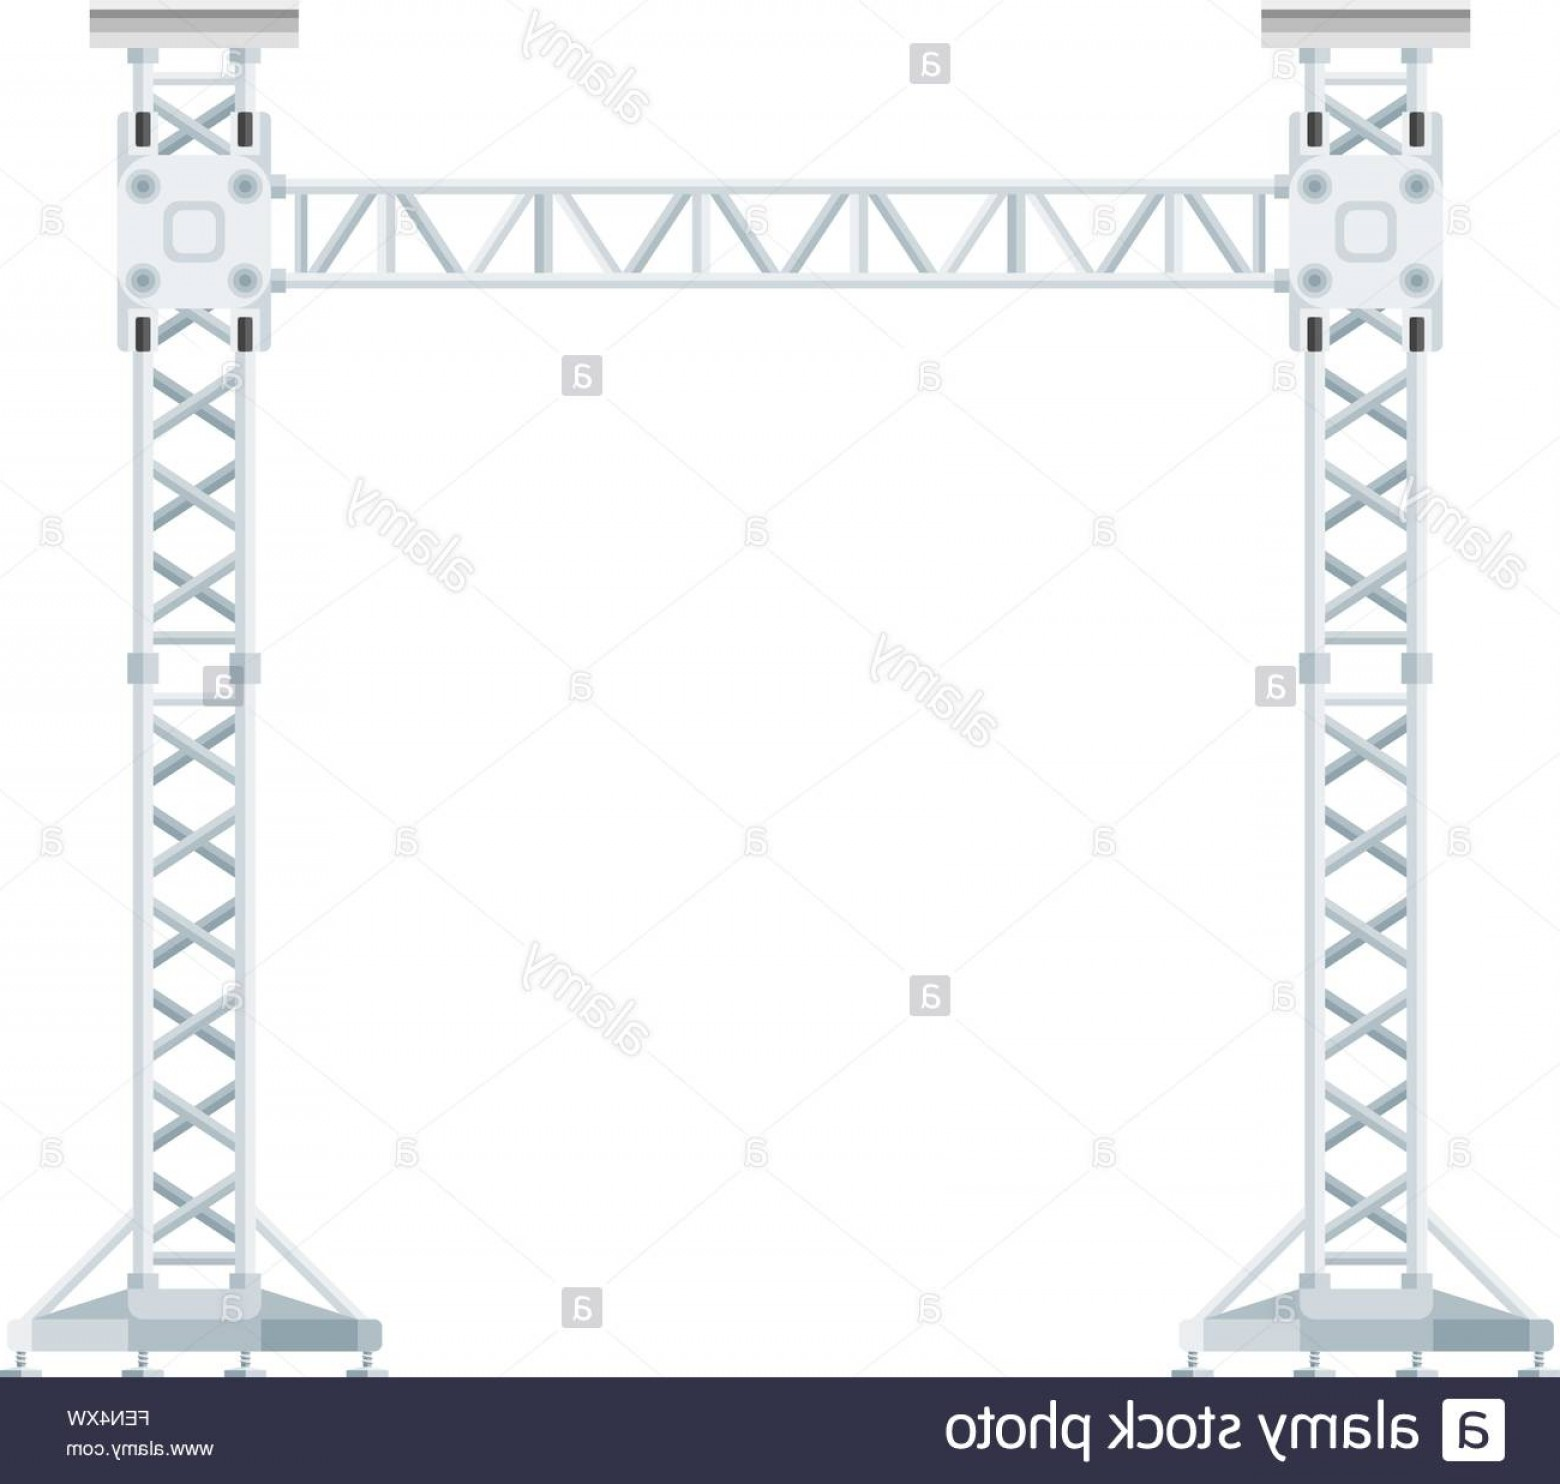 Aluminum Truss Design Vector: Stock Photo Vector Flat Design Stage Sound Lighting Aluminum Truss Tower Lift